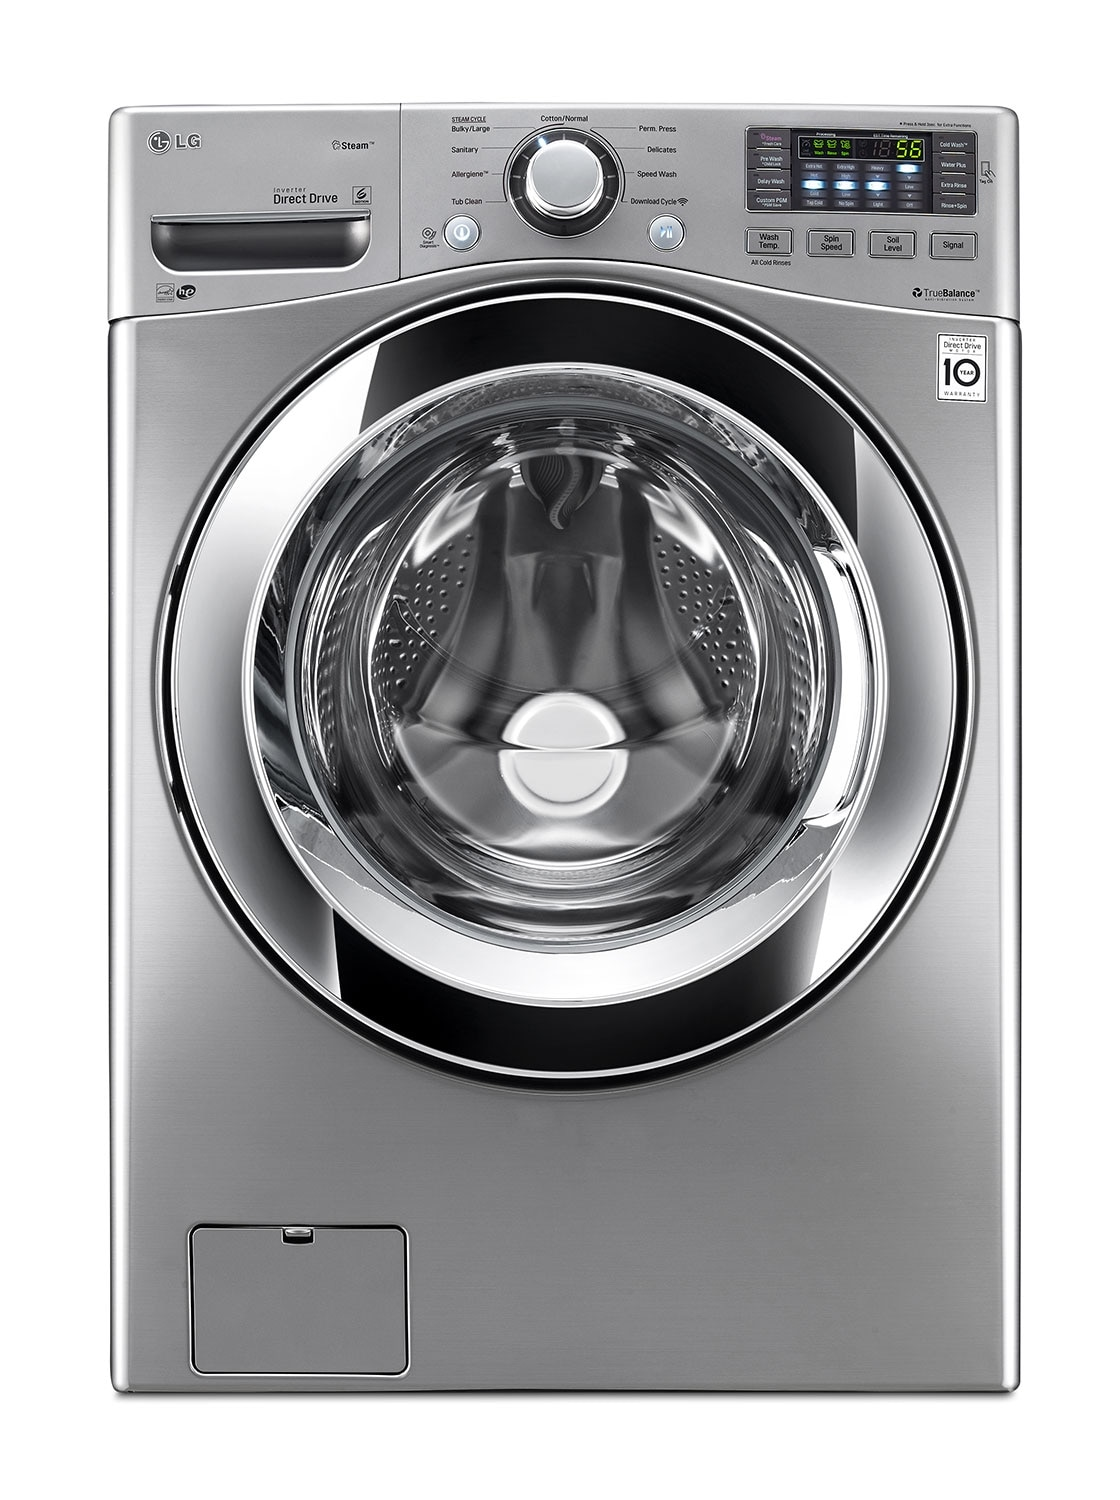 Washers and Dryers - LG Appiances Graphite Steel Front-Load Washer (5.0 Cu. Ft.) - WM3370HVA